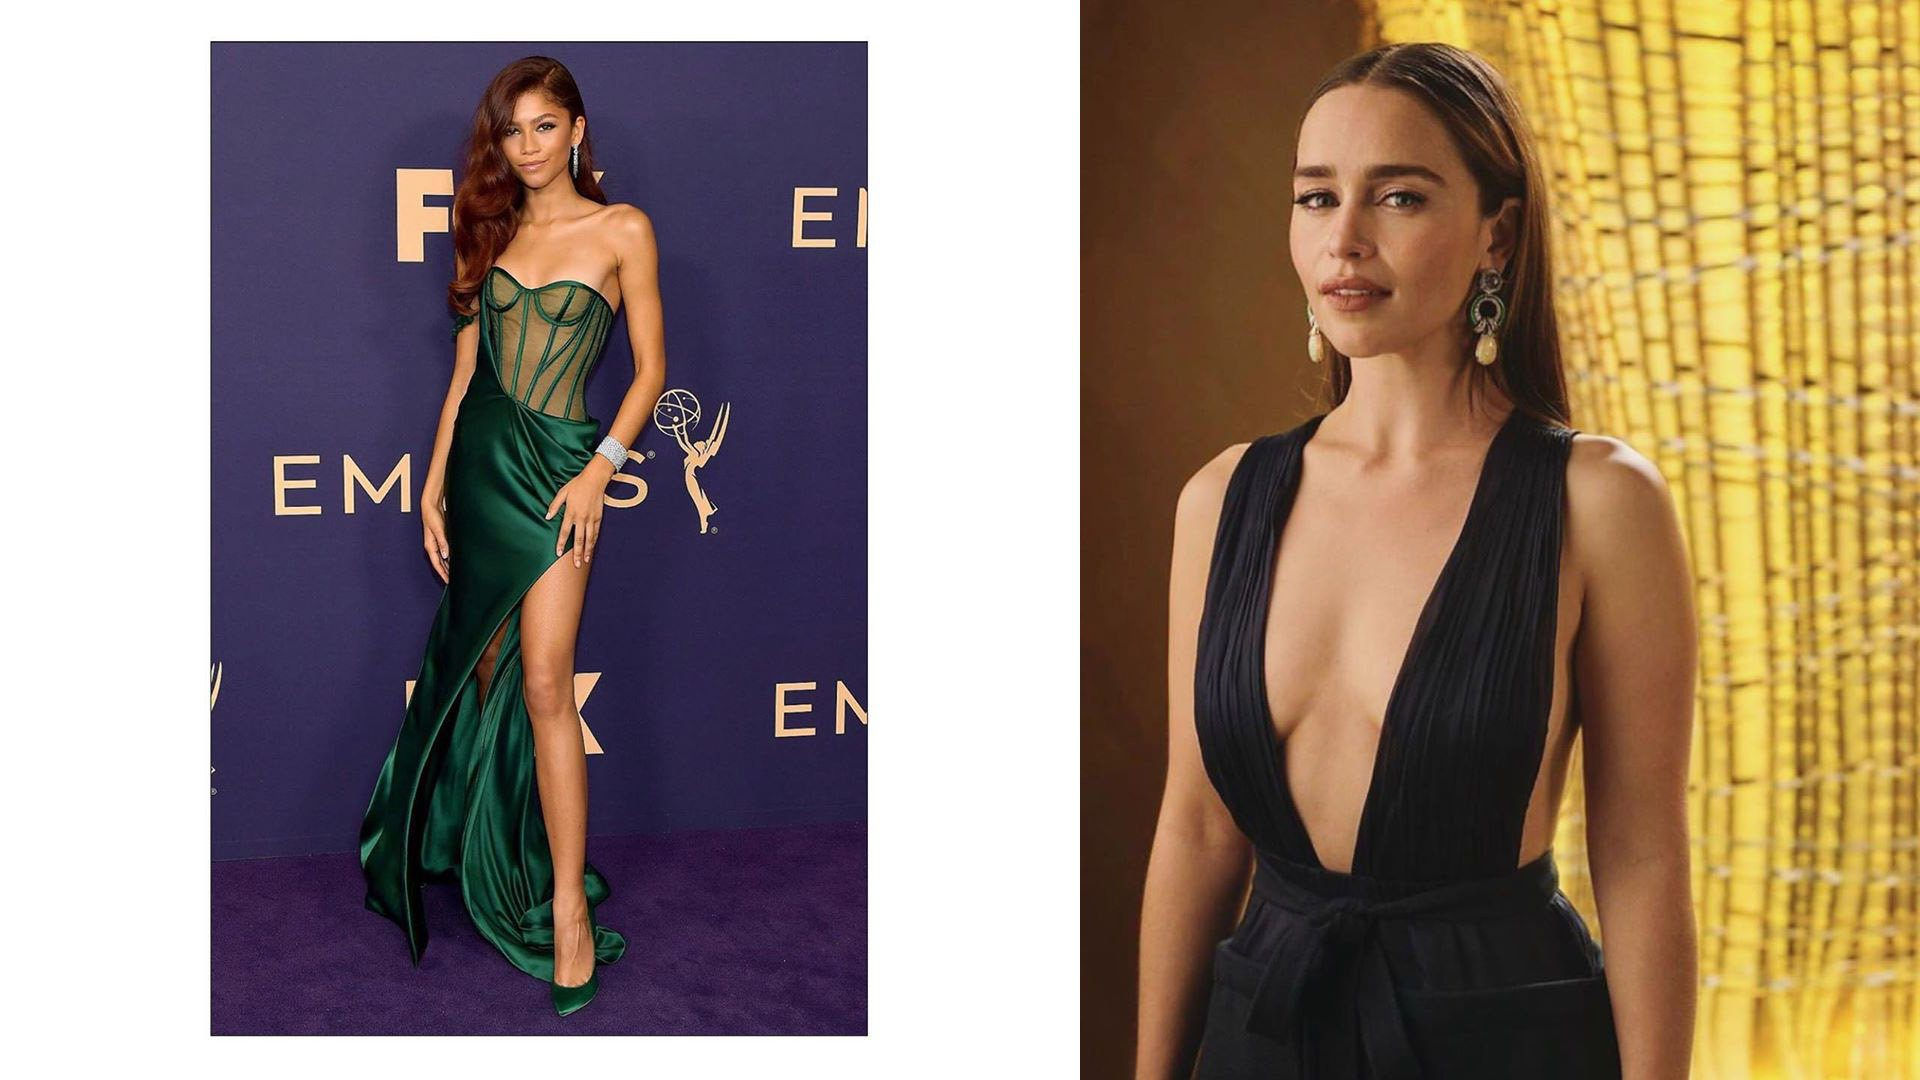 Emmys 2019 Style Standouts